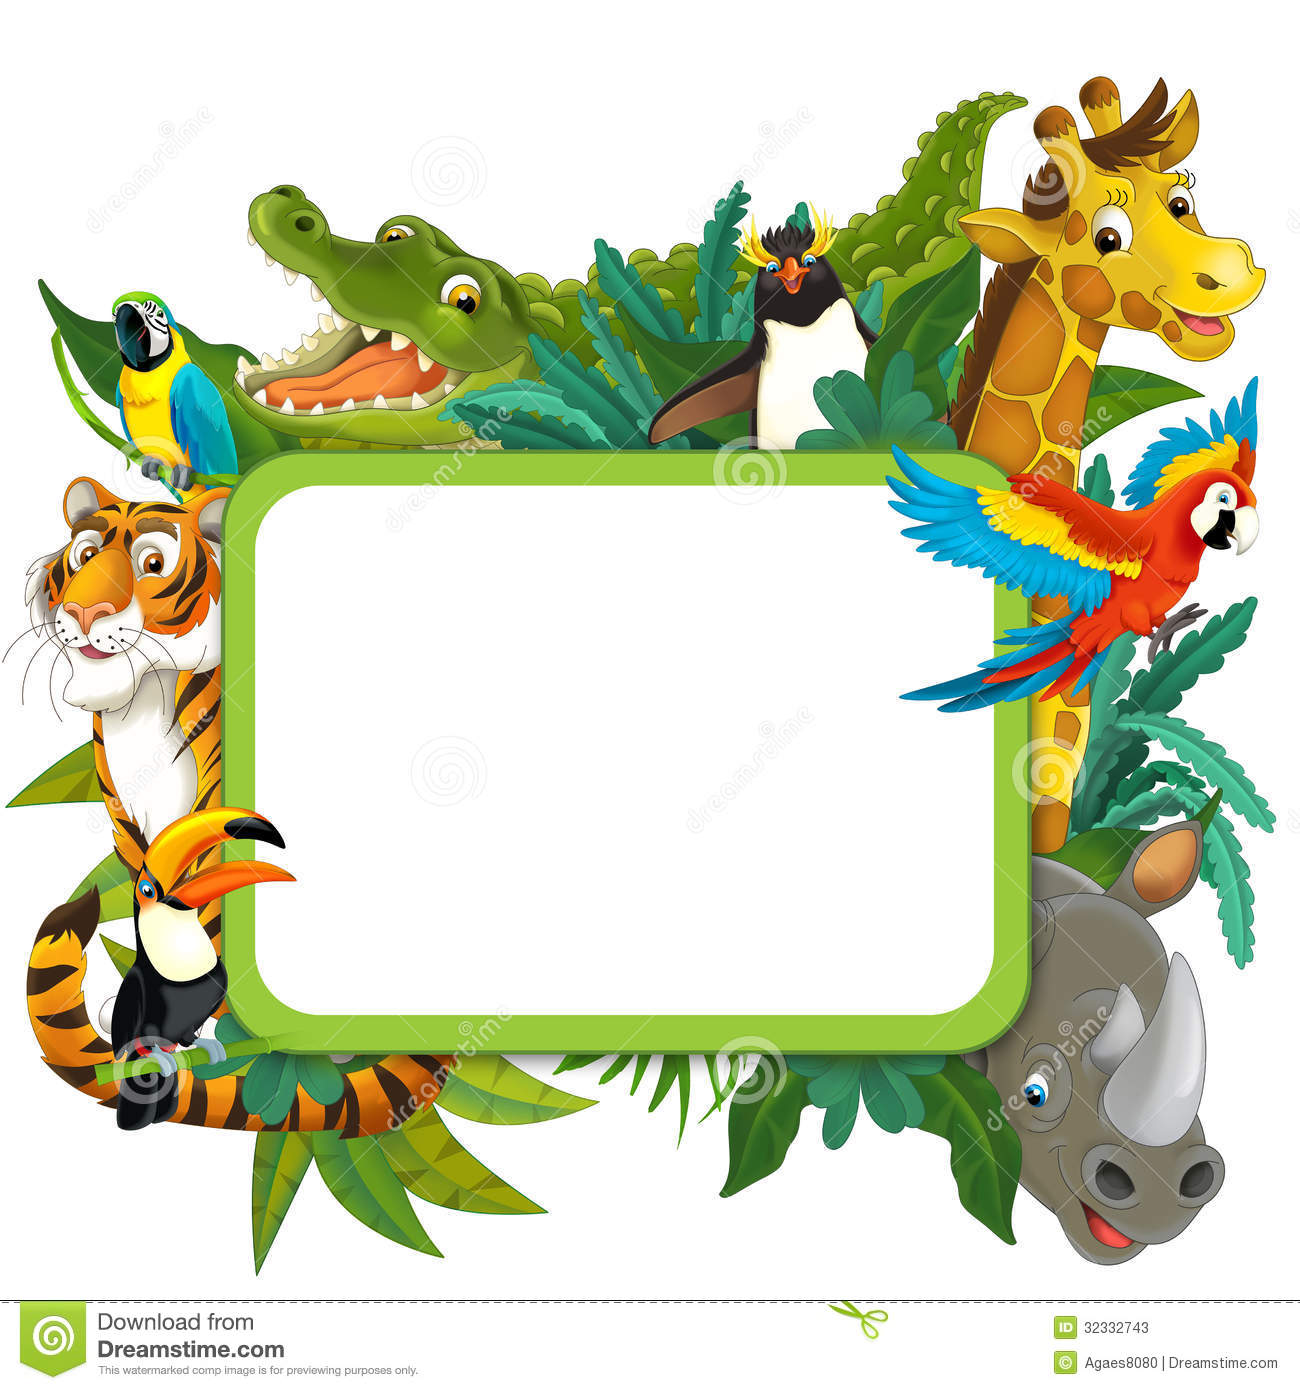 Frame clipart safari Frame Children The For Jungle